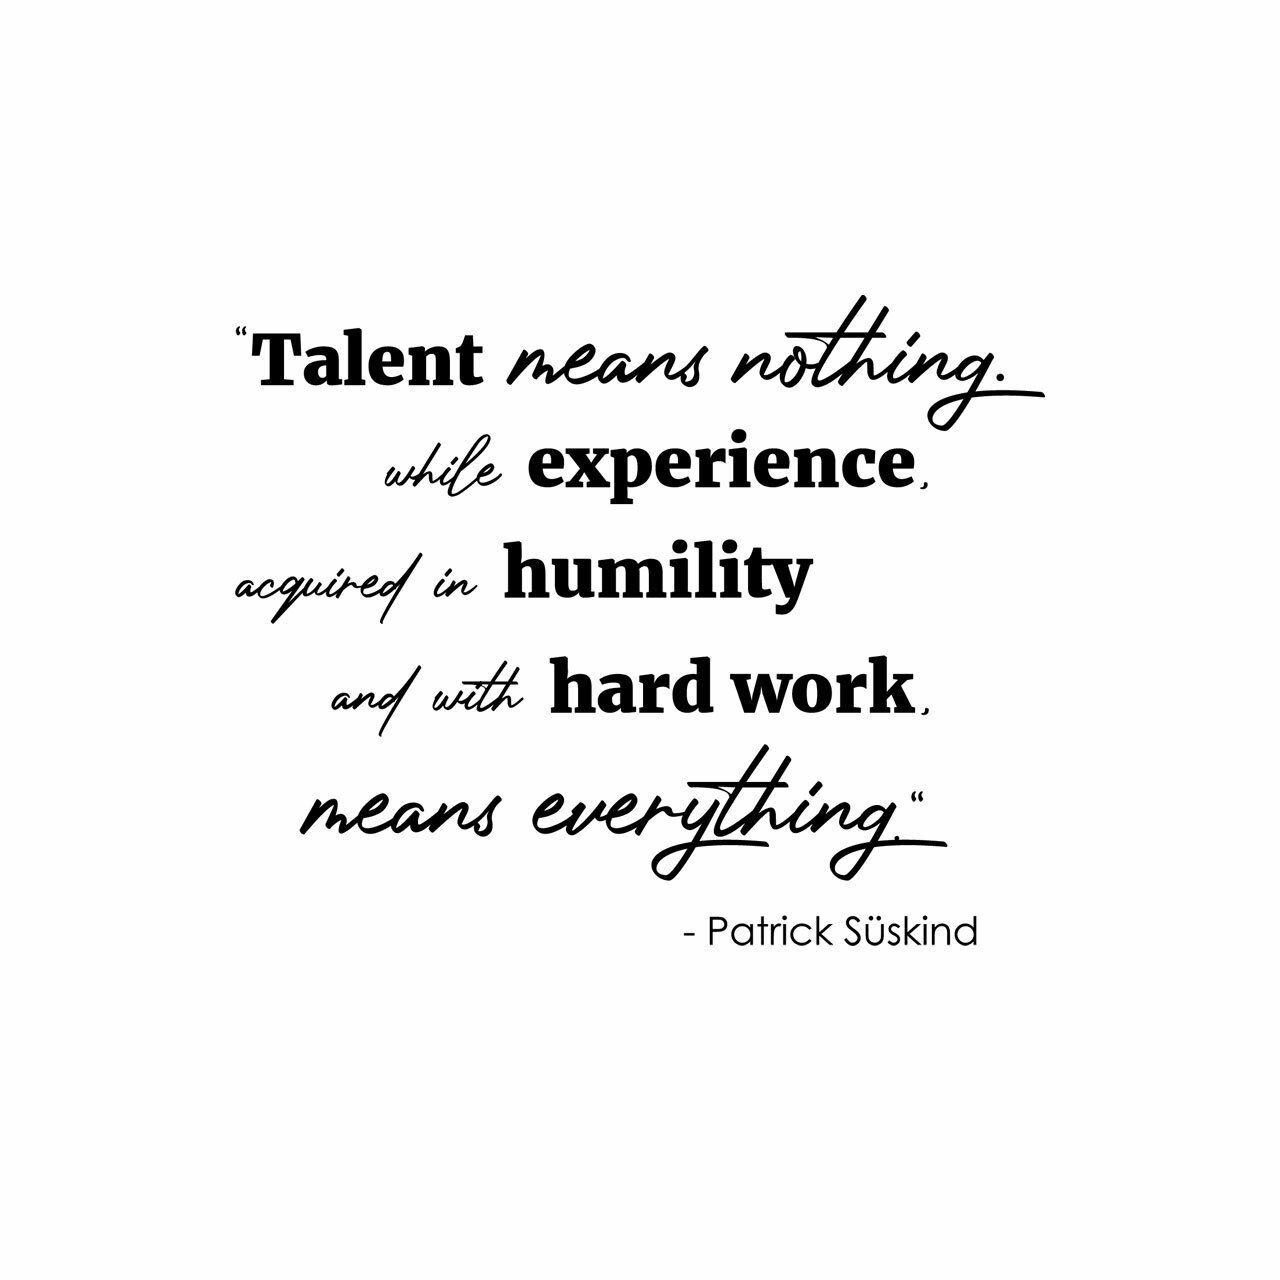 Talent means nothing. While experience acquired in humility with hard work means everything. -Patrick Suskind written in mixed fonts on multiple lines in black on a white background